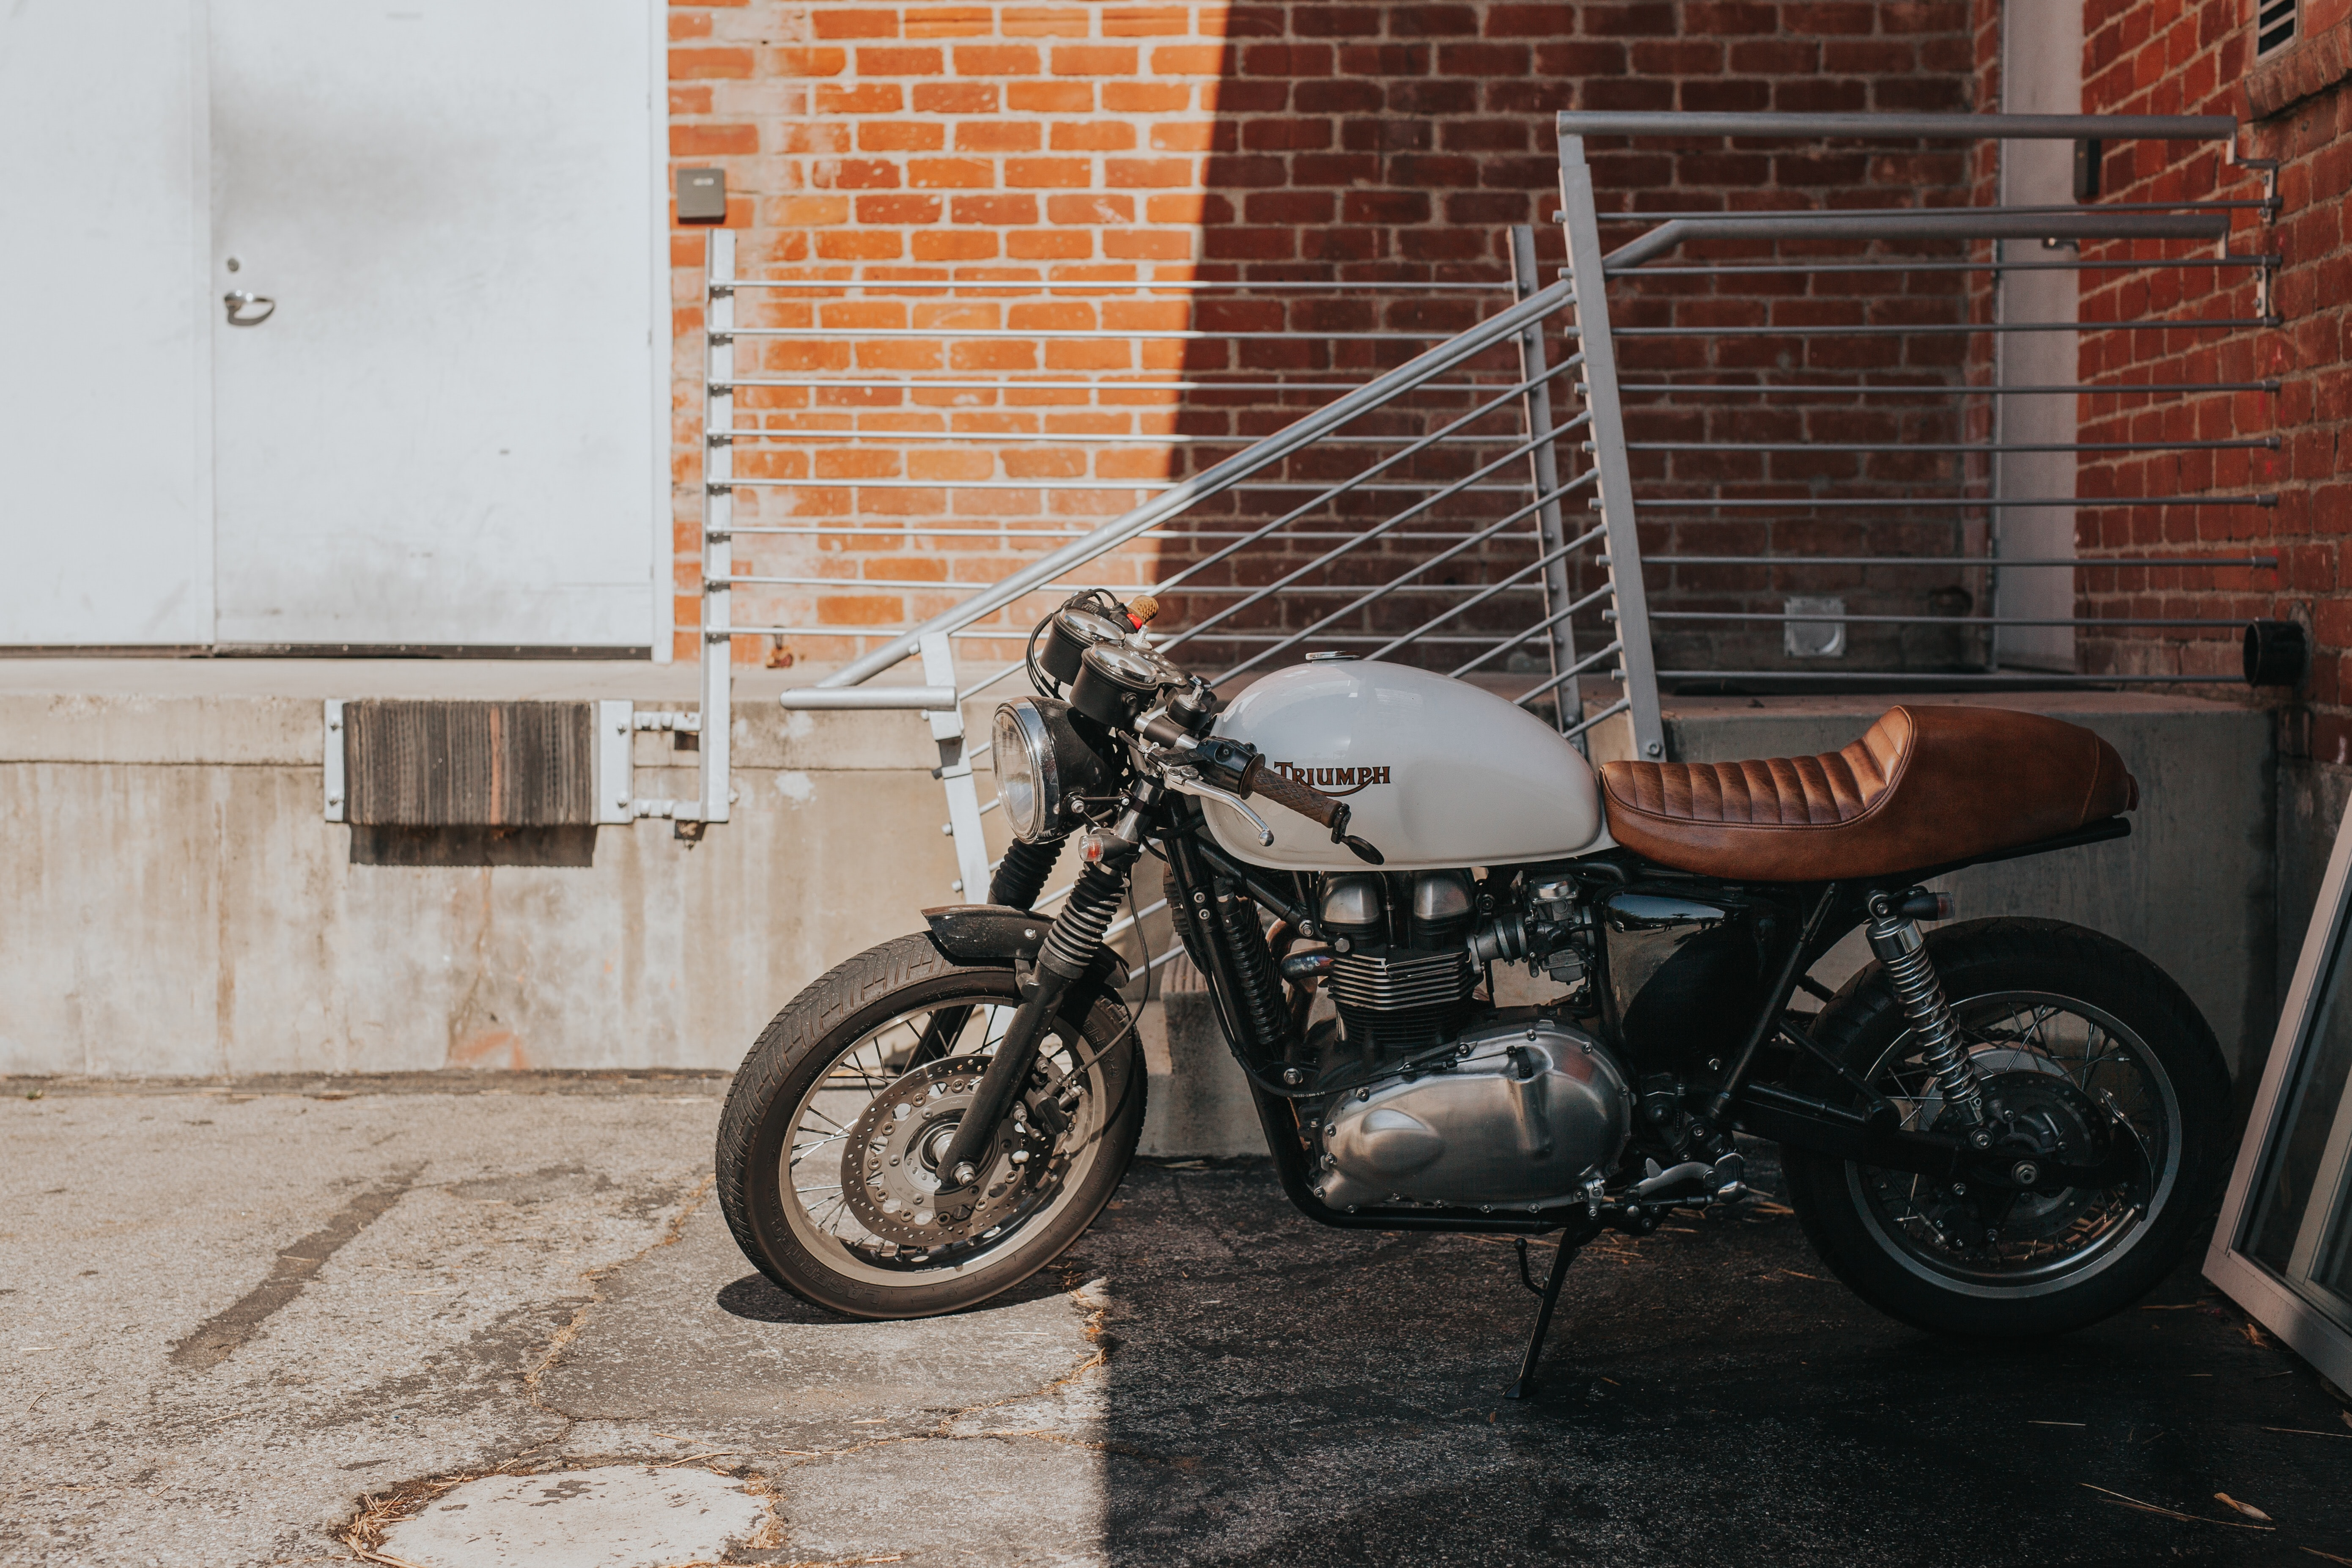 Motorcycle parked in the shade near the railing of a building